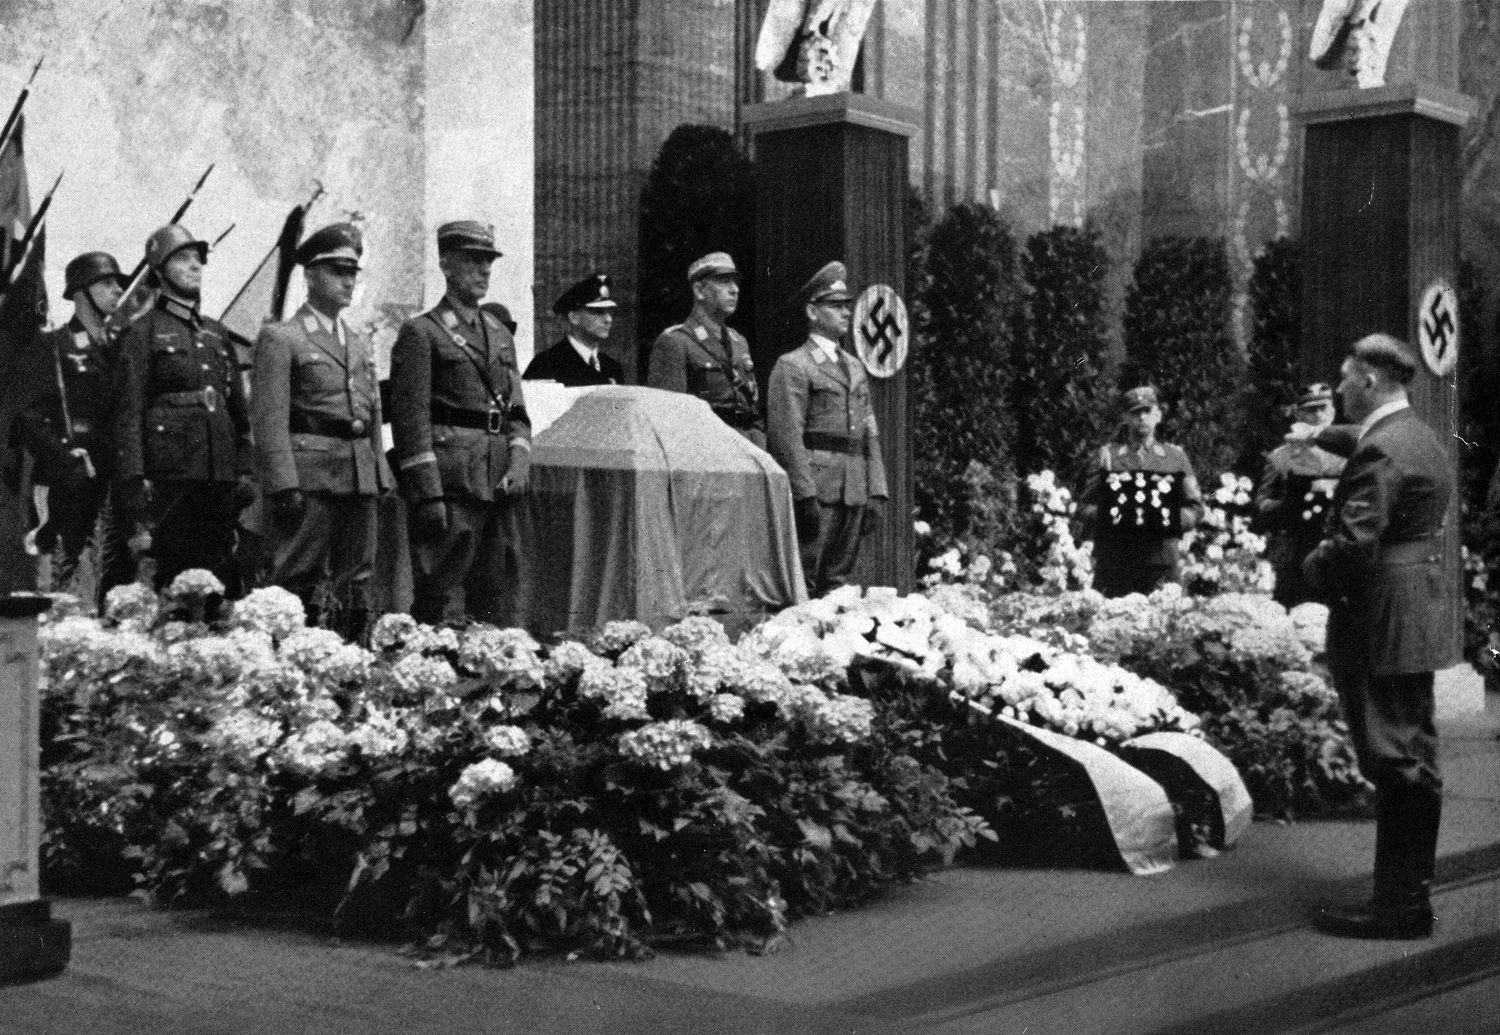 Adolf Hitler at the funeral of Viktor Lutze